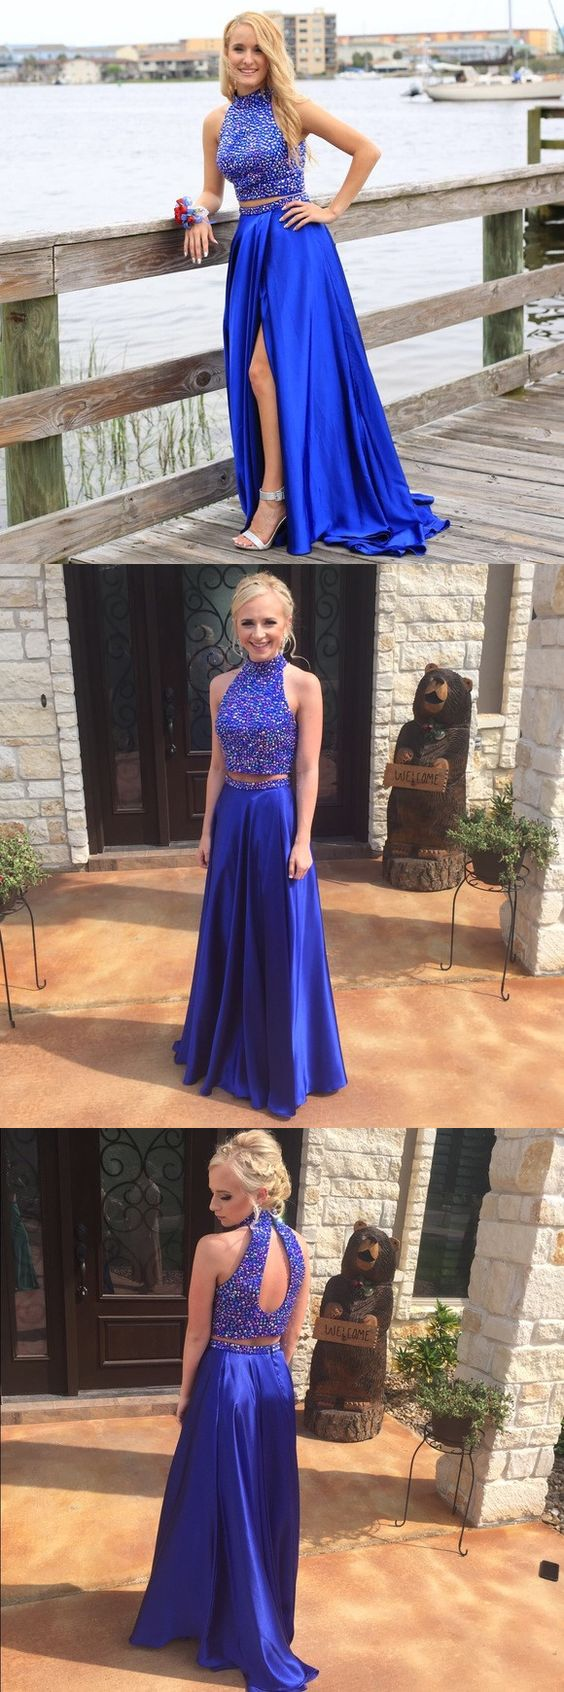 Royal Blue Prom Dresses2 Piece Prom Gowntwo Piece Prom Dresses